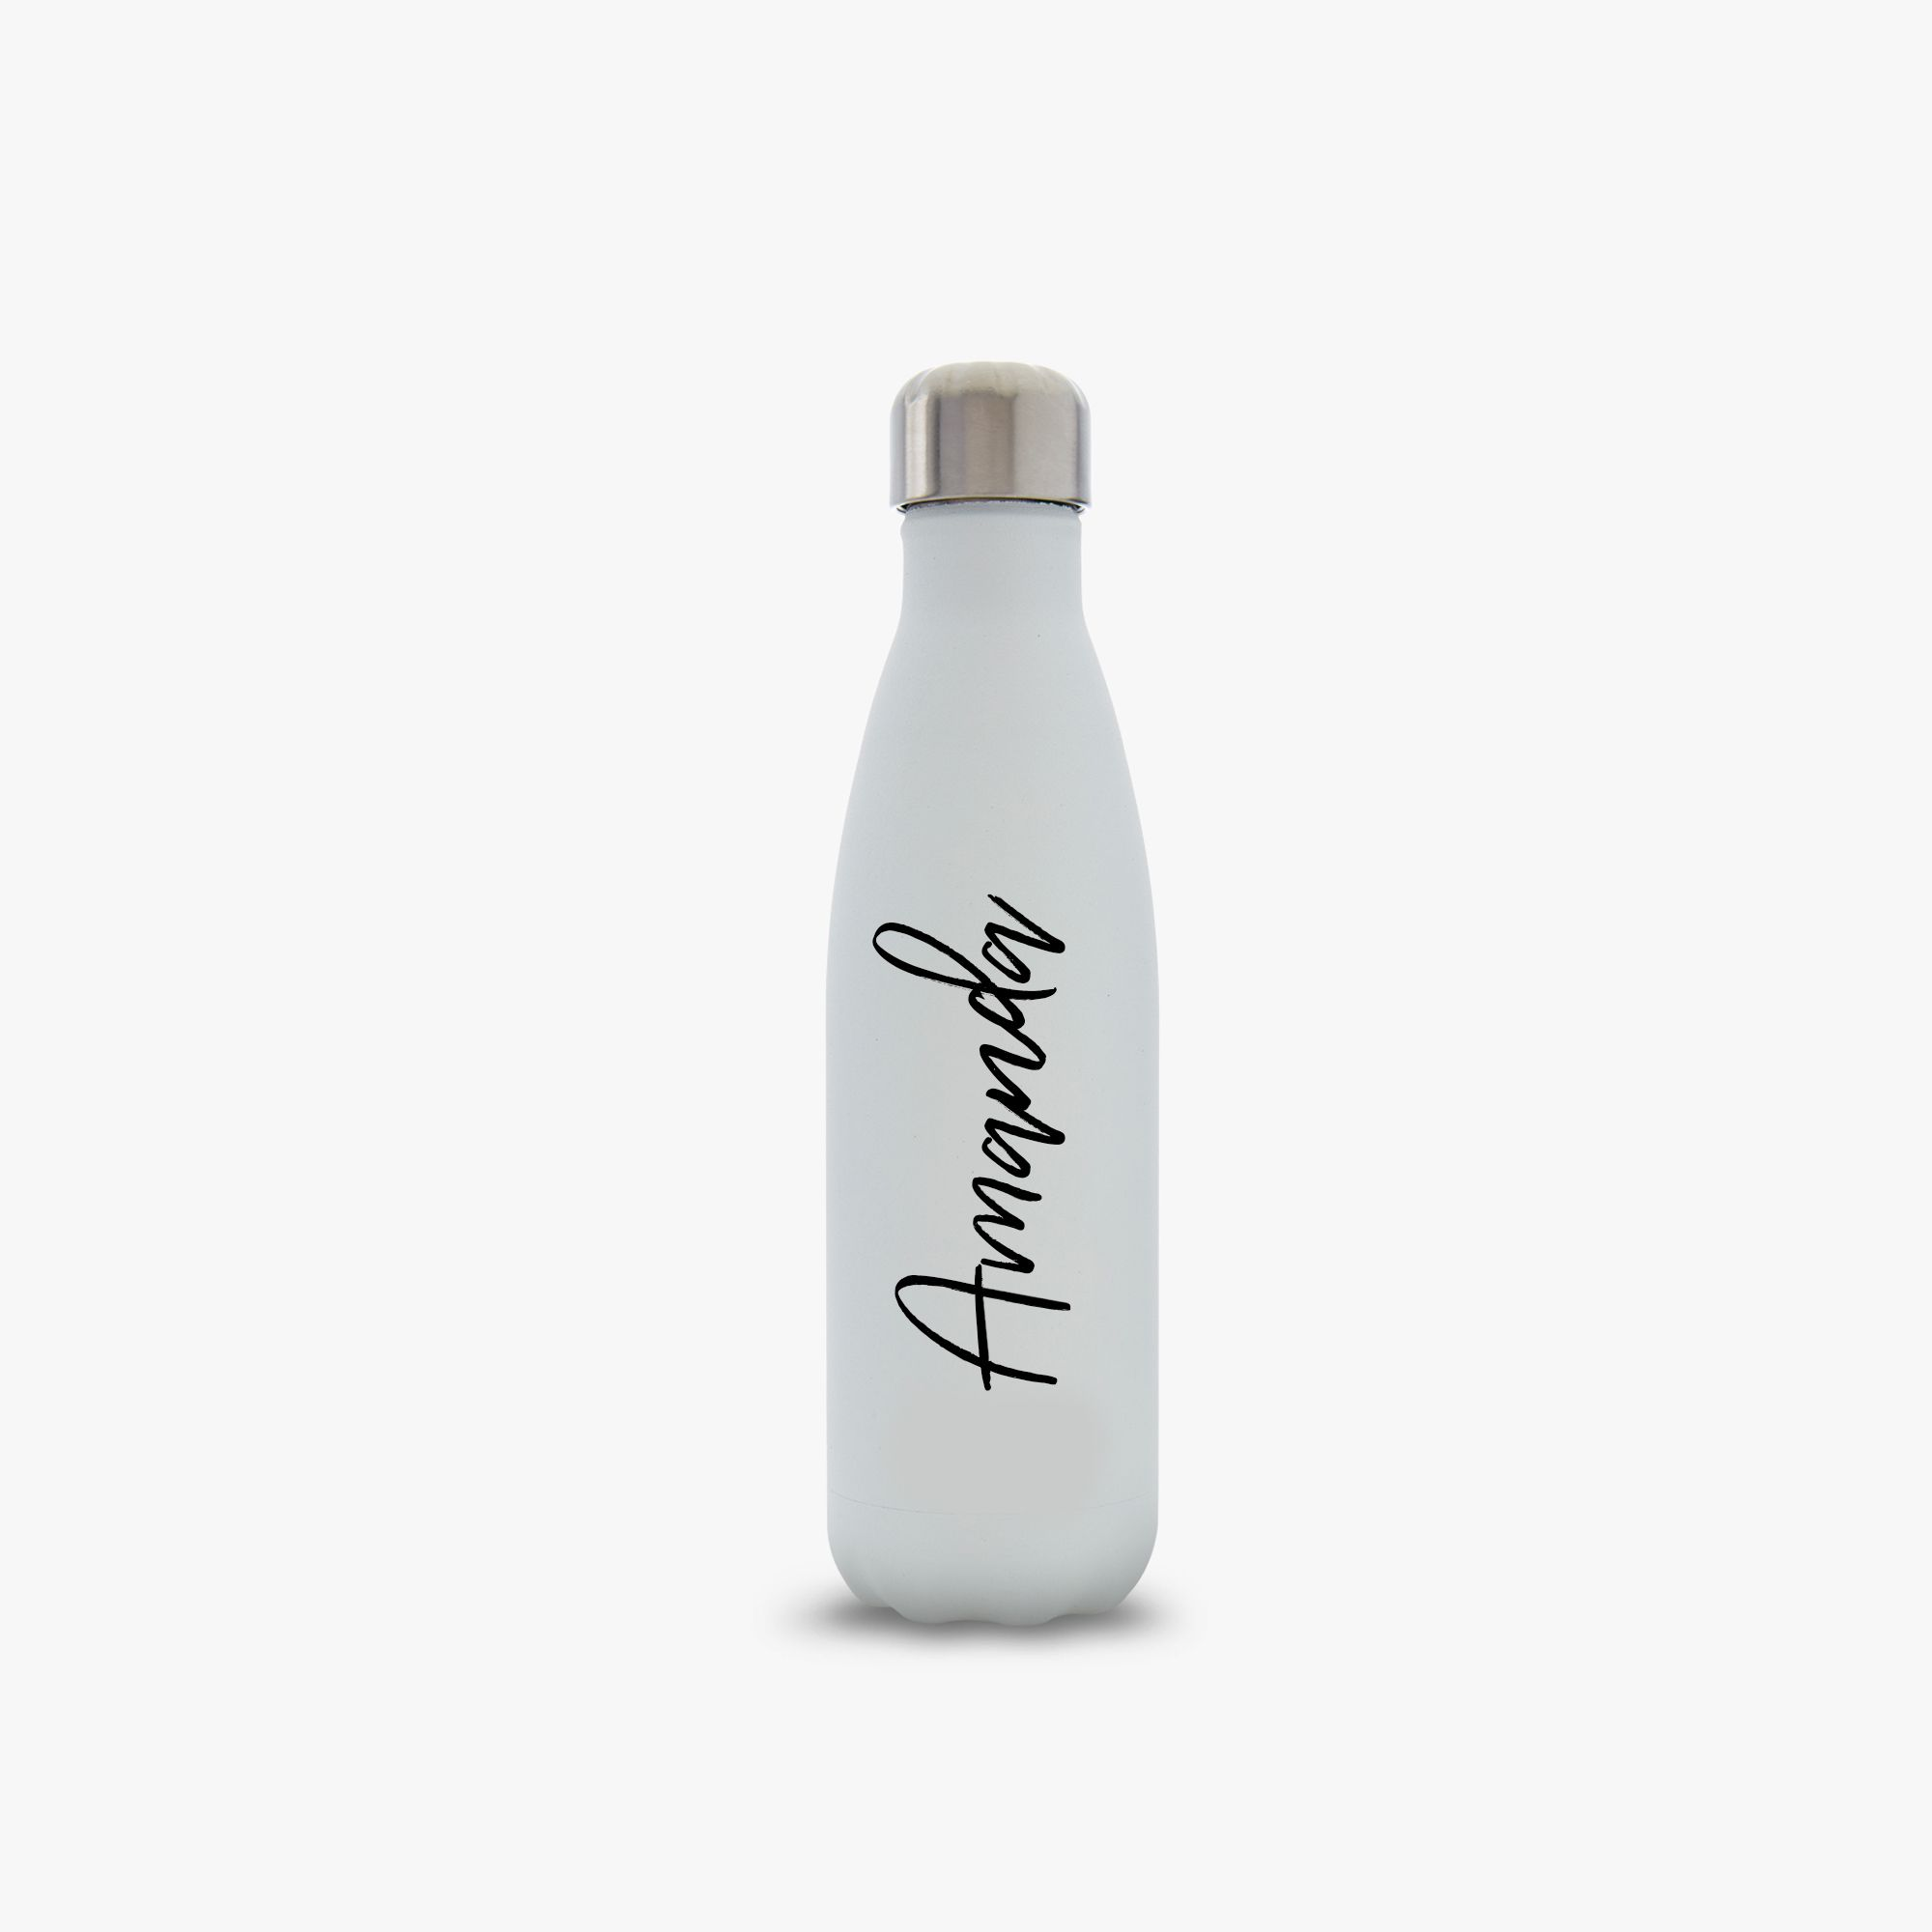 35ea76e399 Customize your Water Bottle with your name! #Swell #SwellBottle #Decal  #Sticker #Etsy